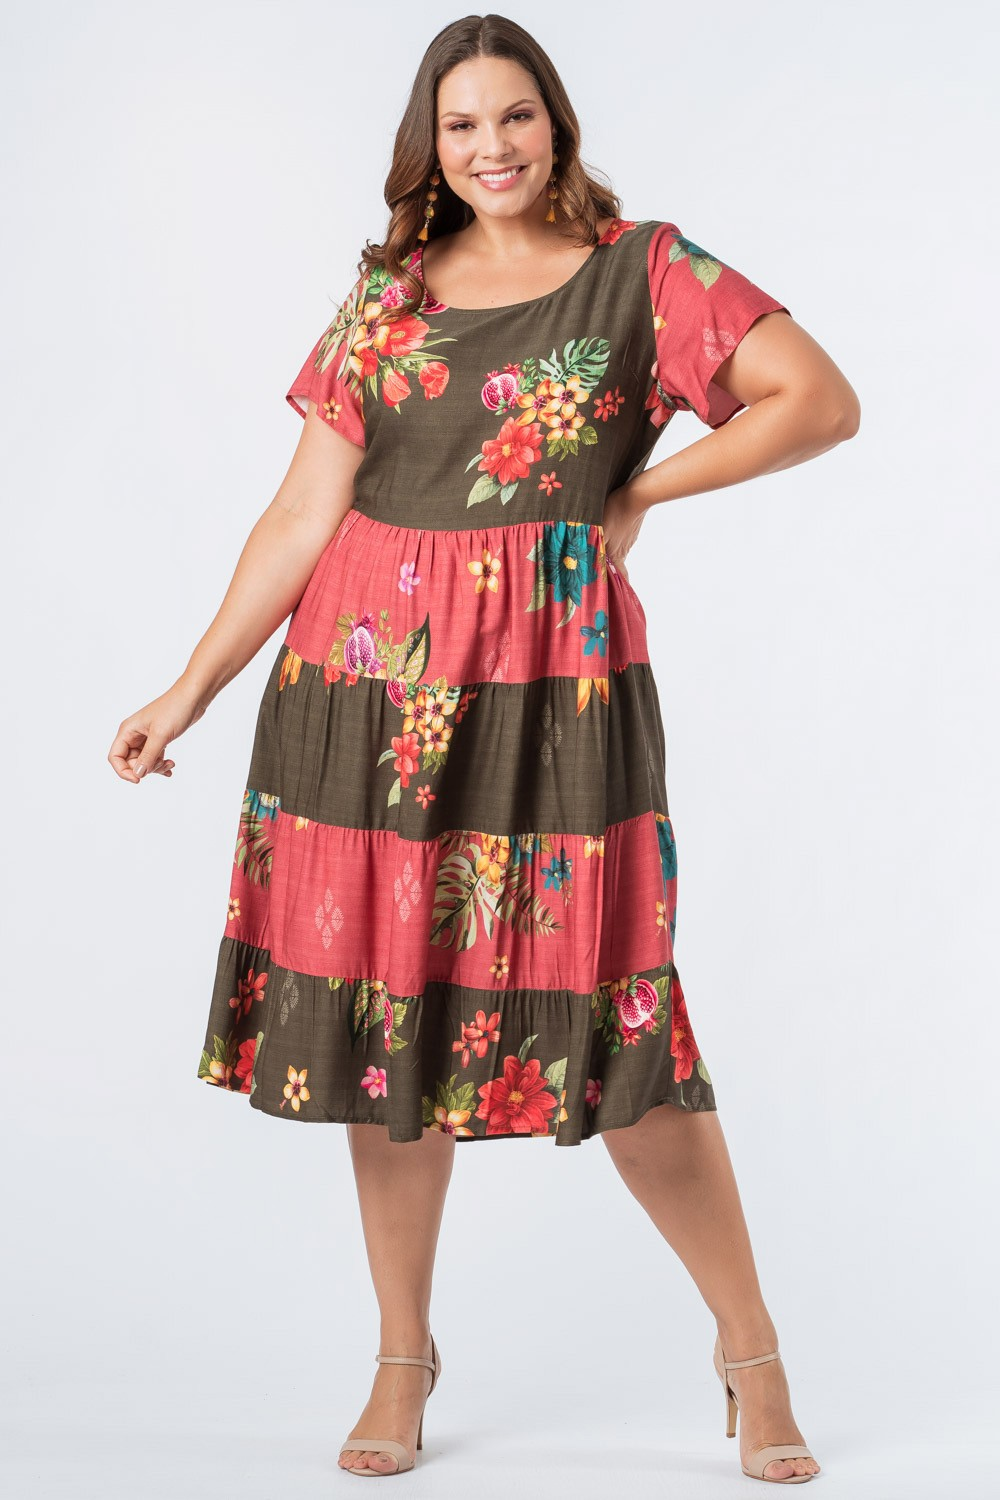 RE-VIVA| VESTIDO ESTAMPADO PLUS SIZE CAMADAS OLIVA E BORDÔ